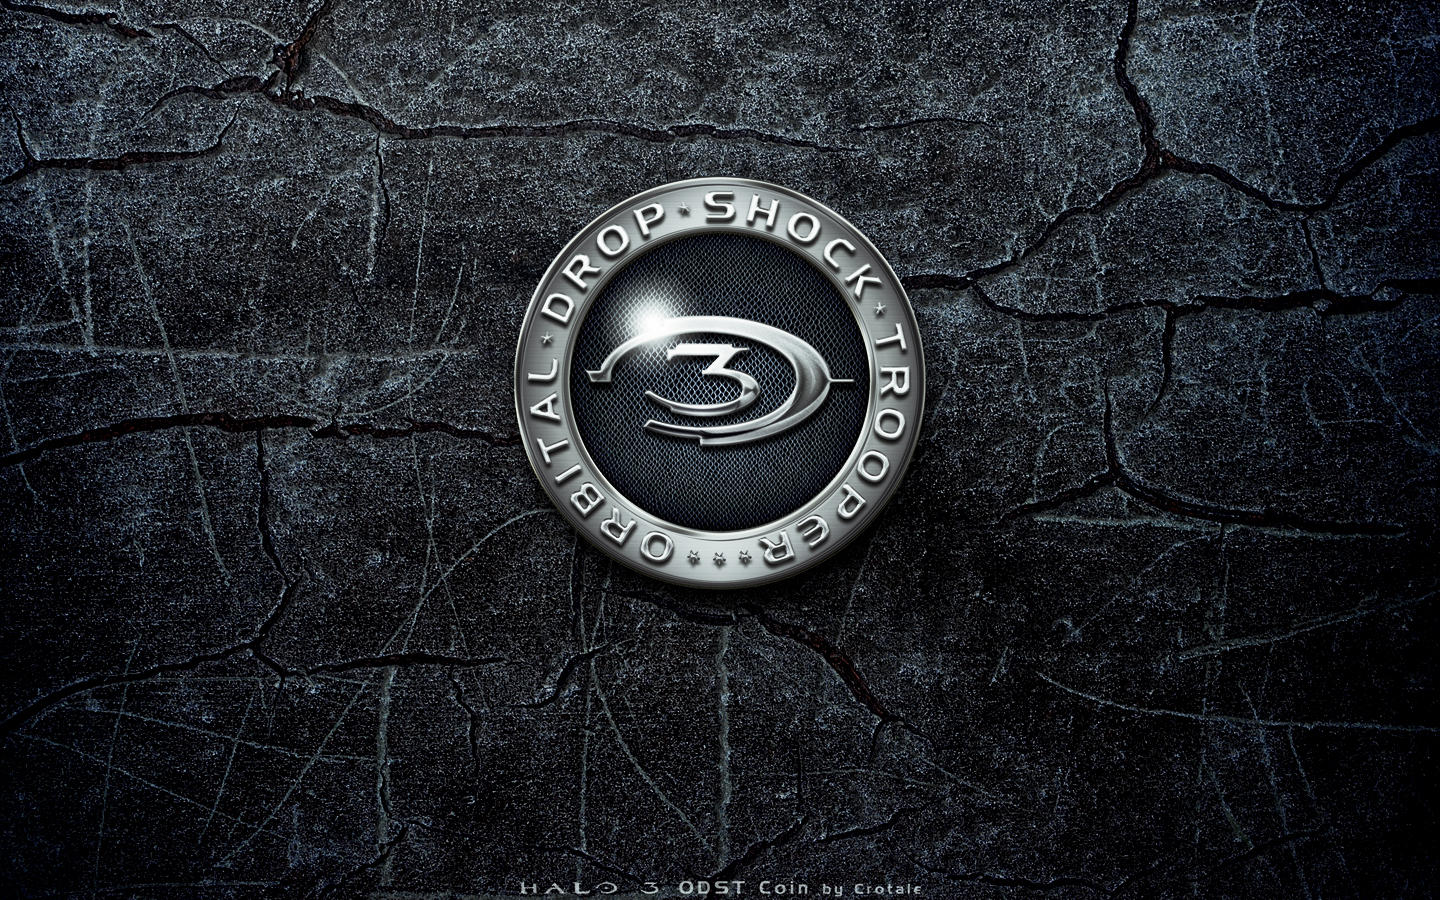 Halo 3 ODST Coin Back by Crotale